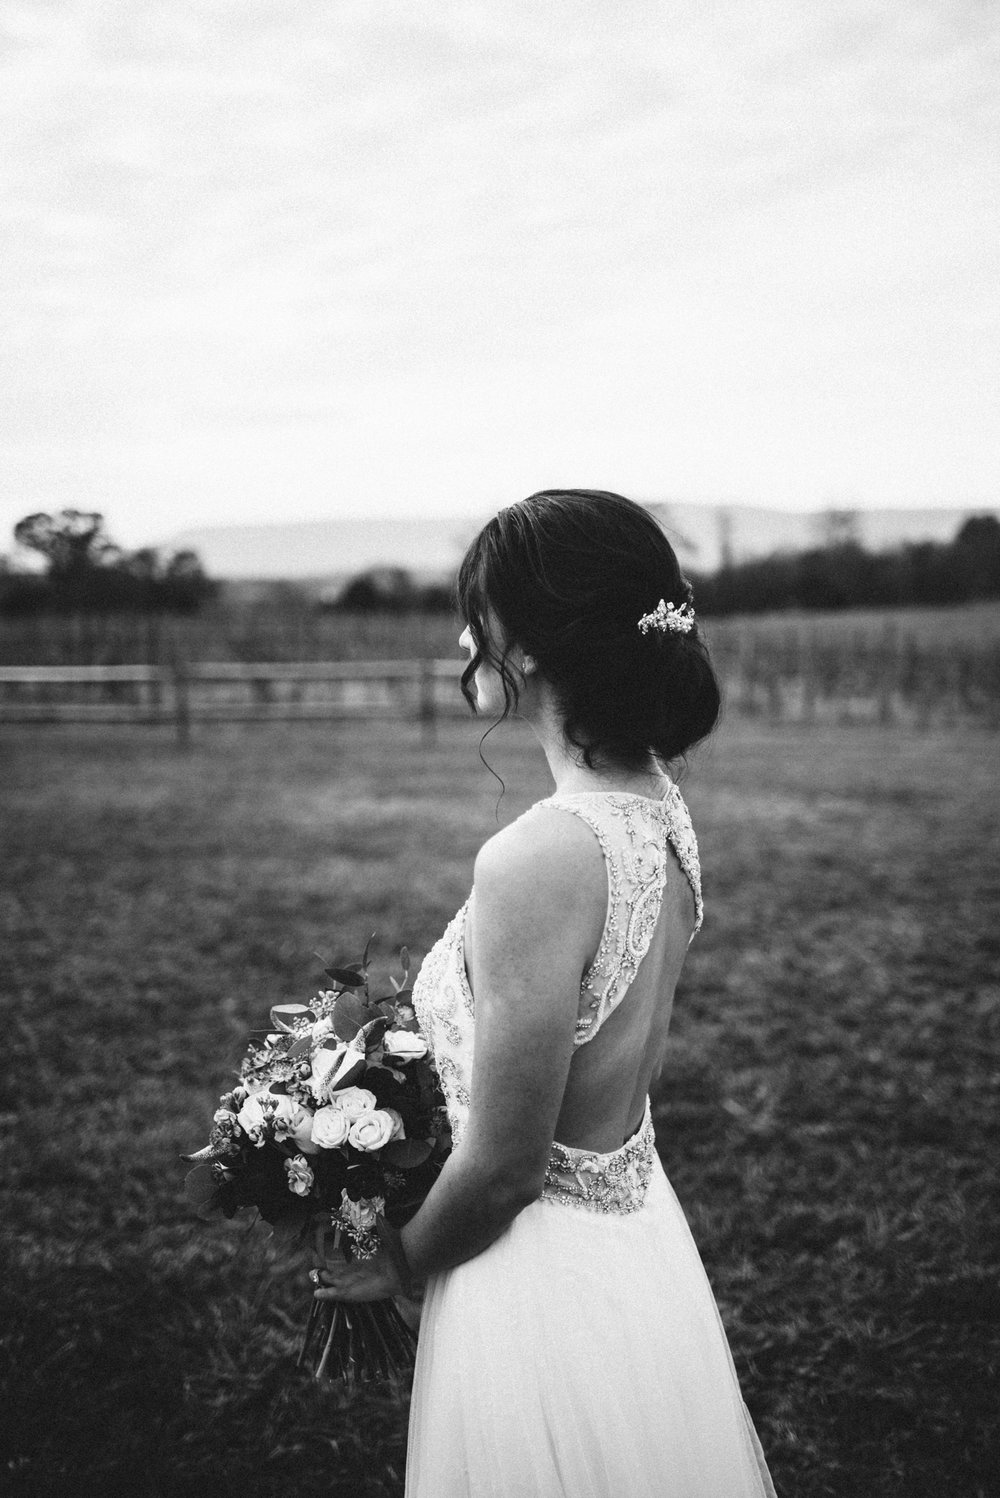 Alyssa and Jesse Winter Vineyard Wedding Luray Virginia Shenandoah Valley Faithbrooke_42.JPG